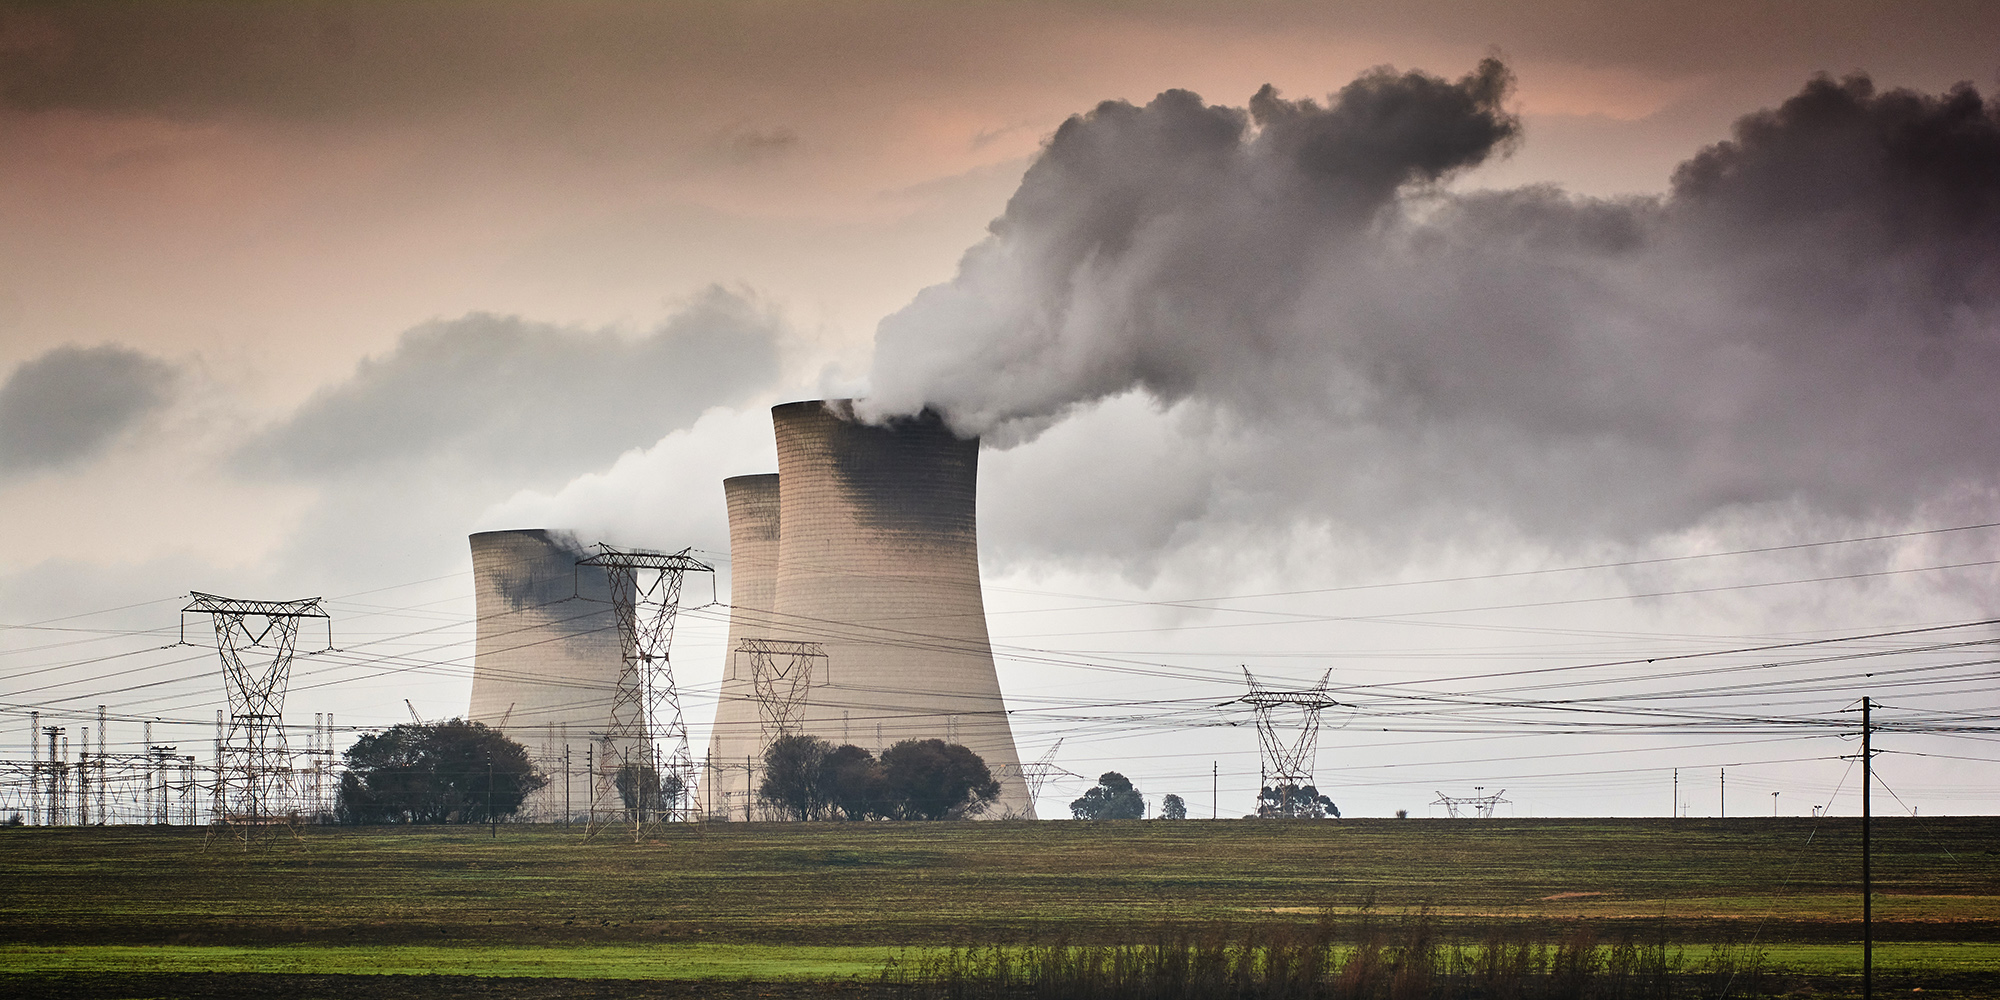 DIRTY BUSINESS: Eskom emits more sulphur dioxide than any power company in the world — latest research